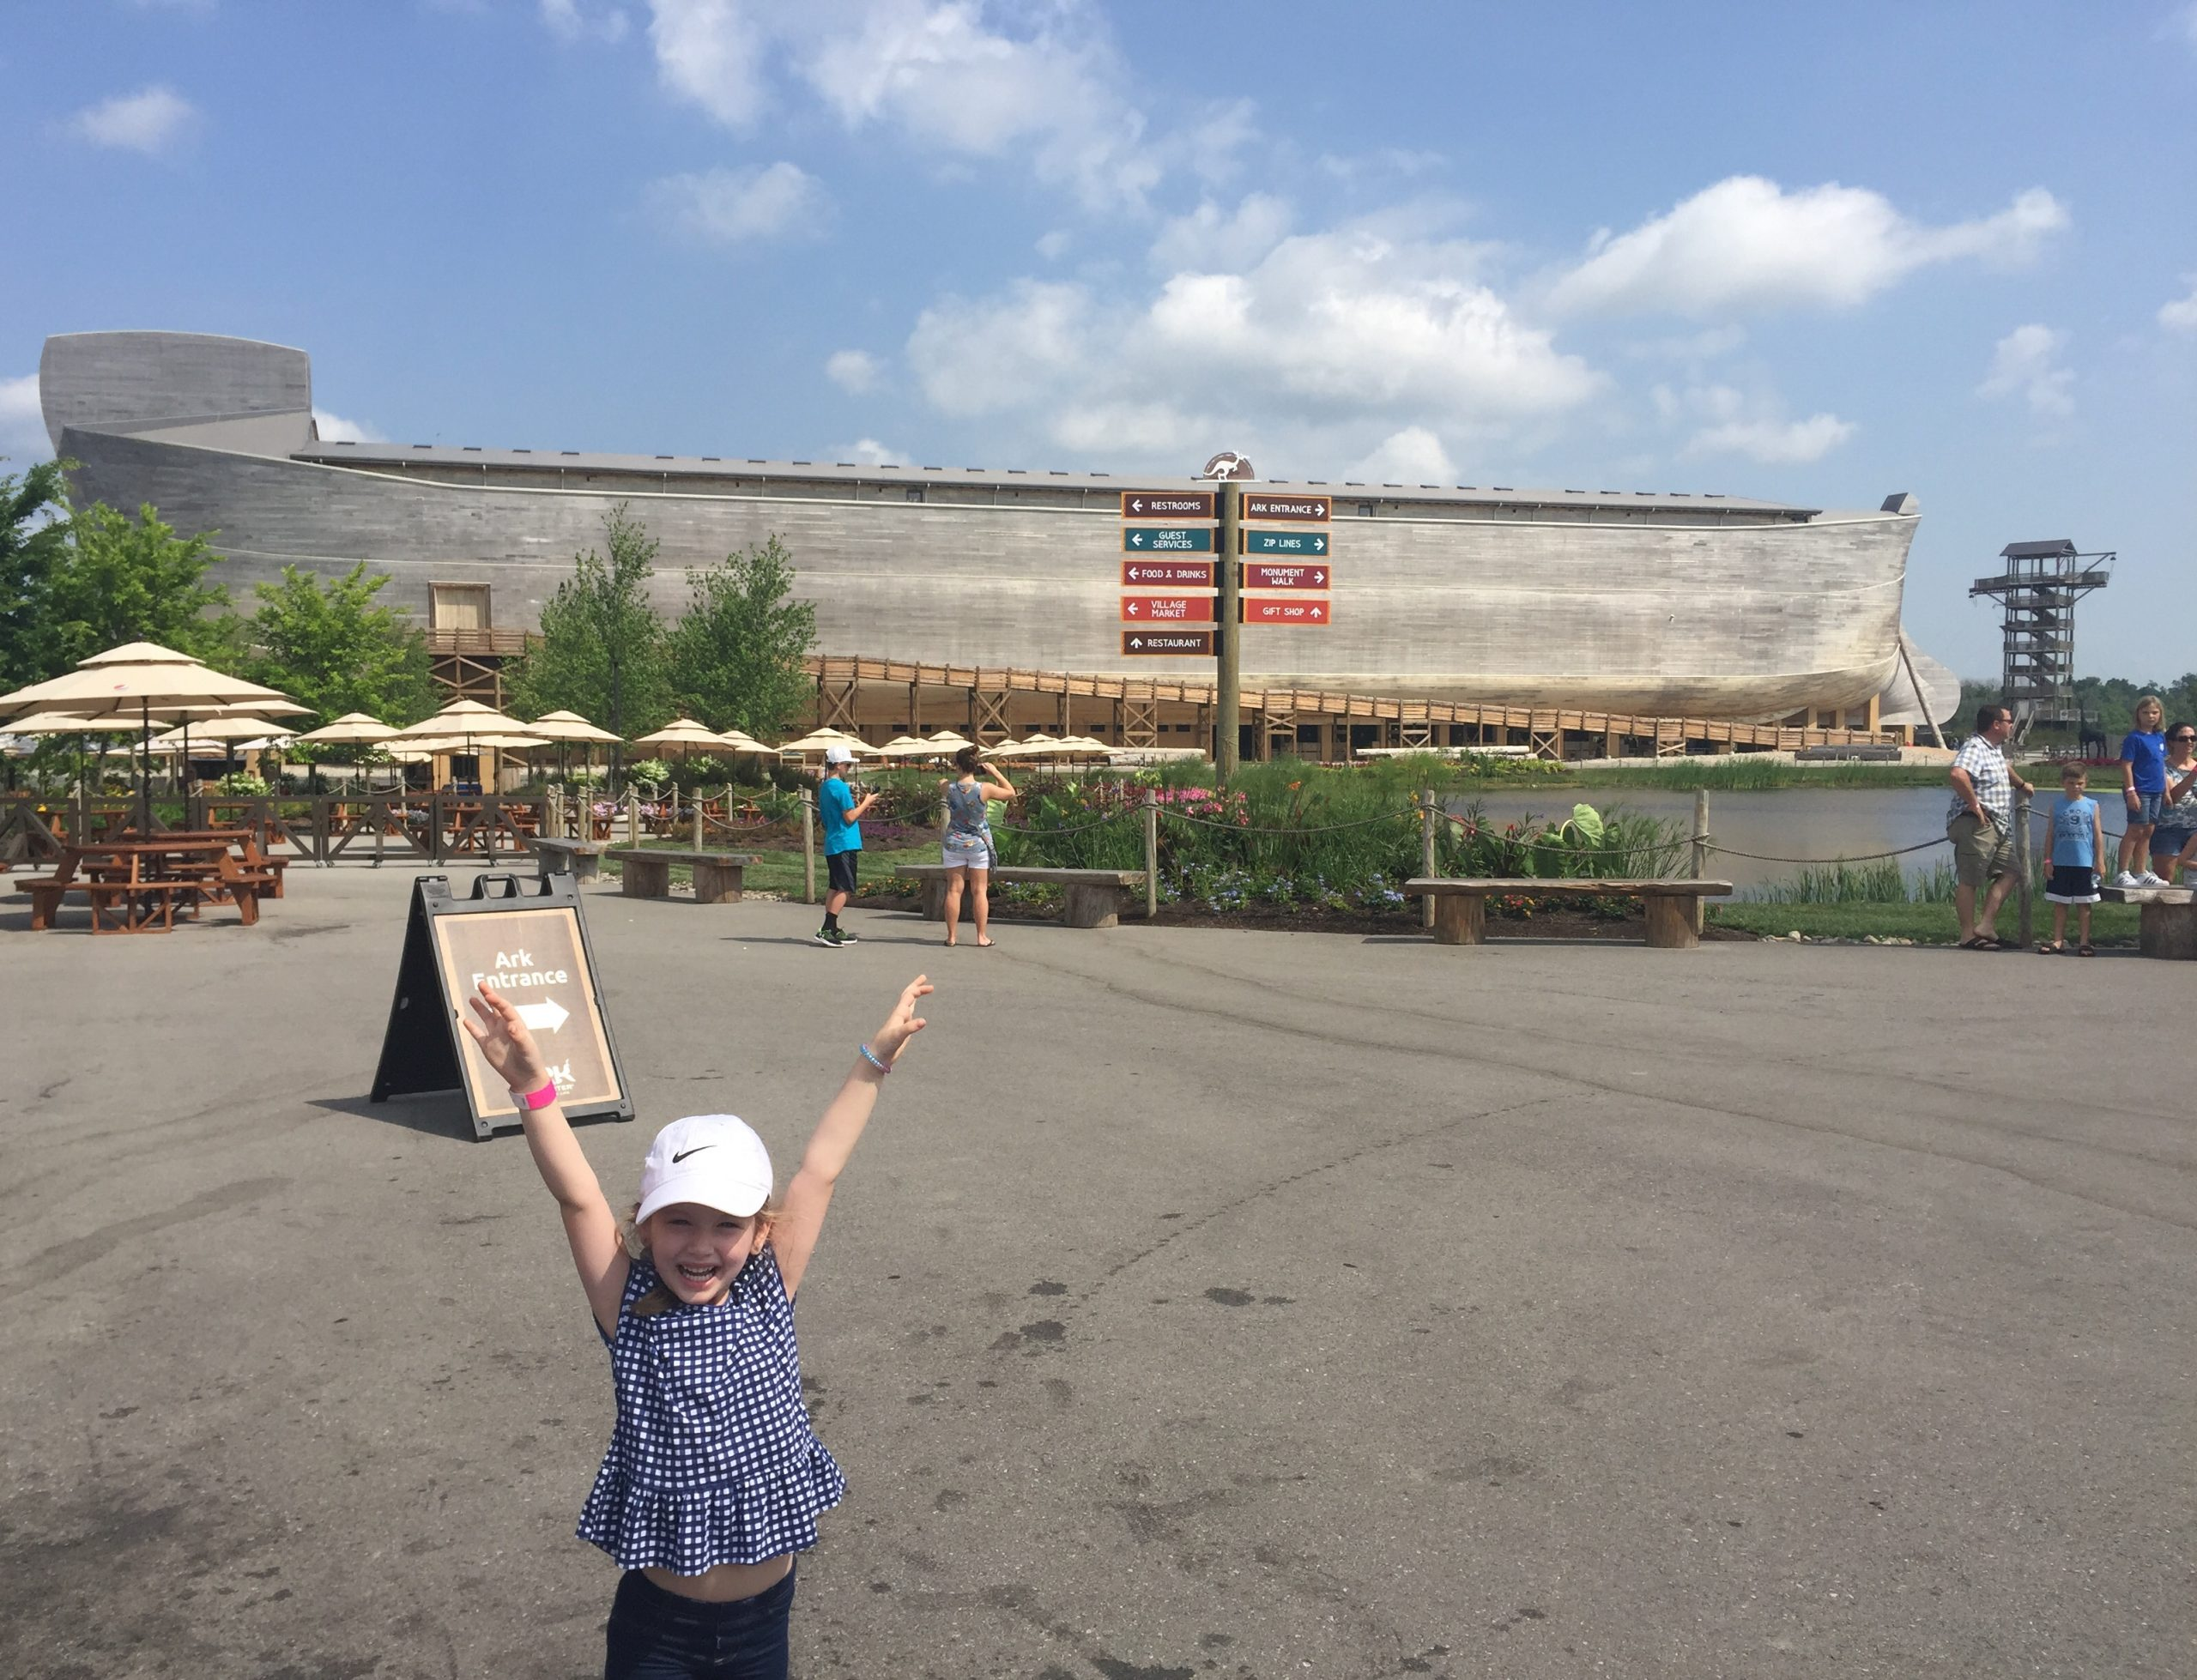 Our Family's Visit to The Ark Encounter